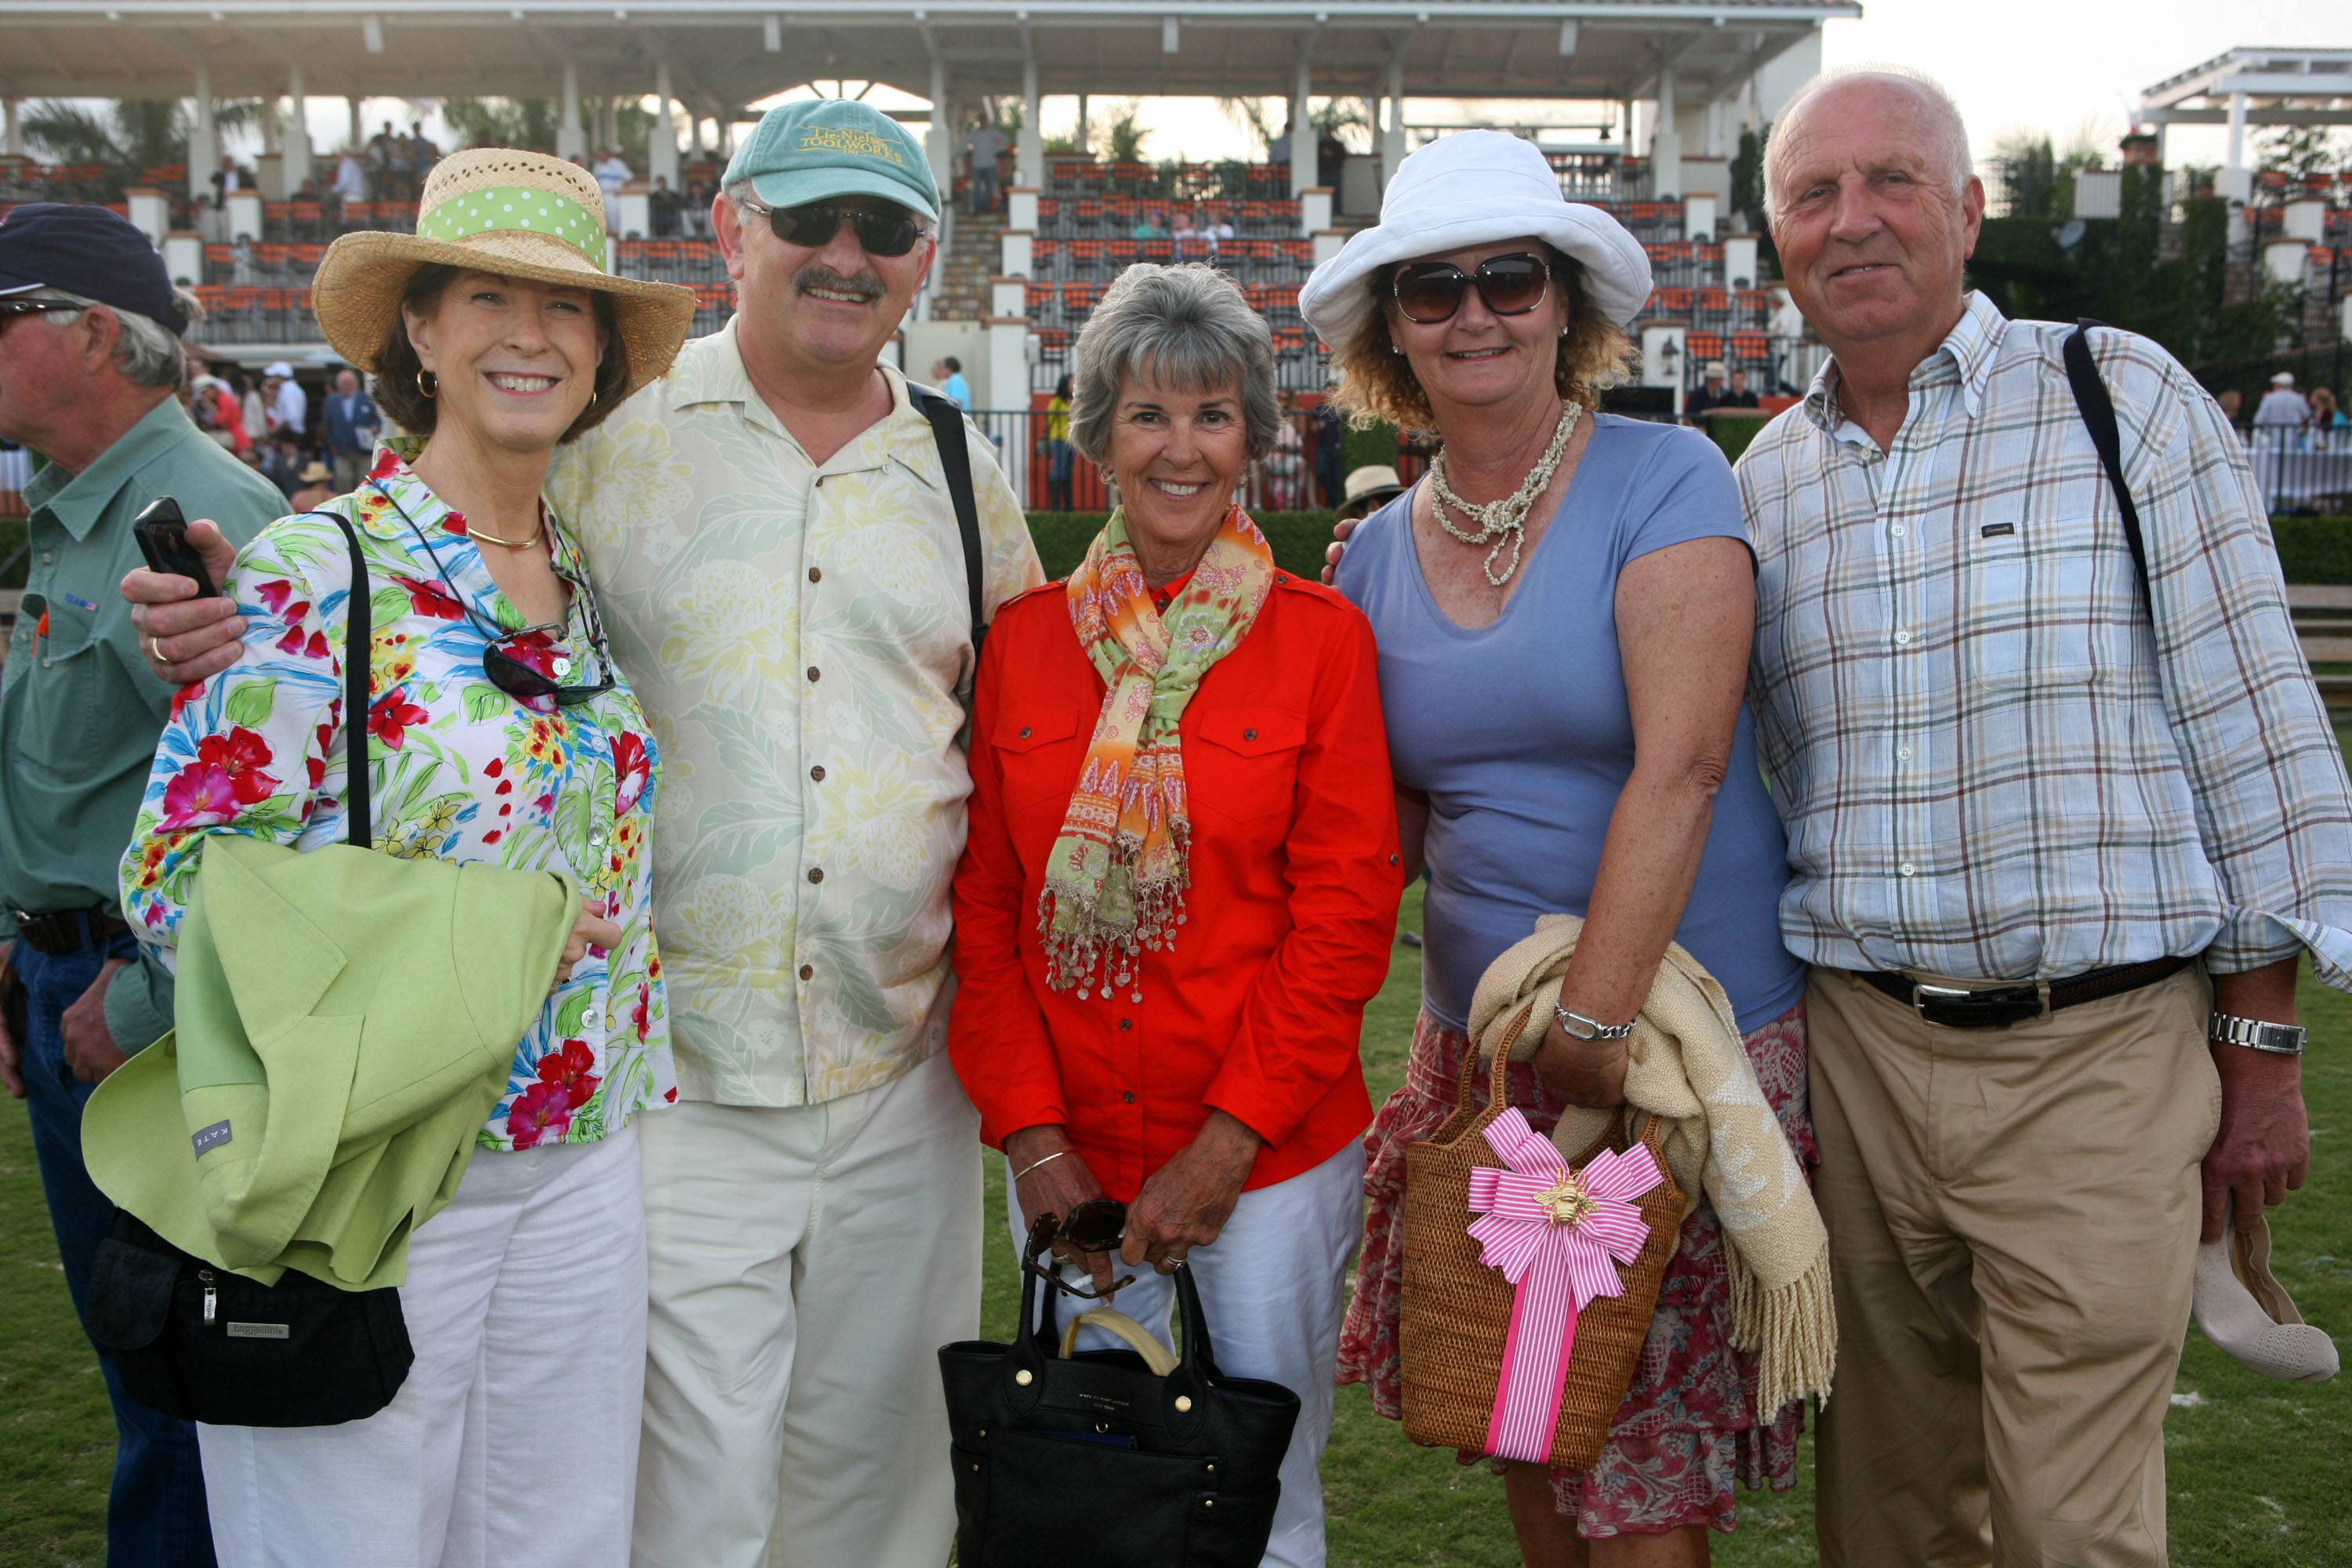 Gigi Langer, Peter Langer, Marcia Smith, Mary Grace York & Tom York